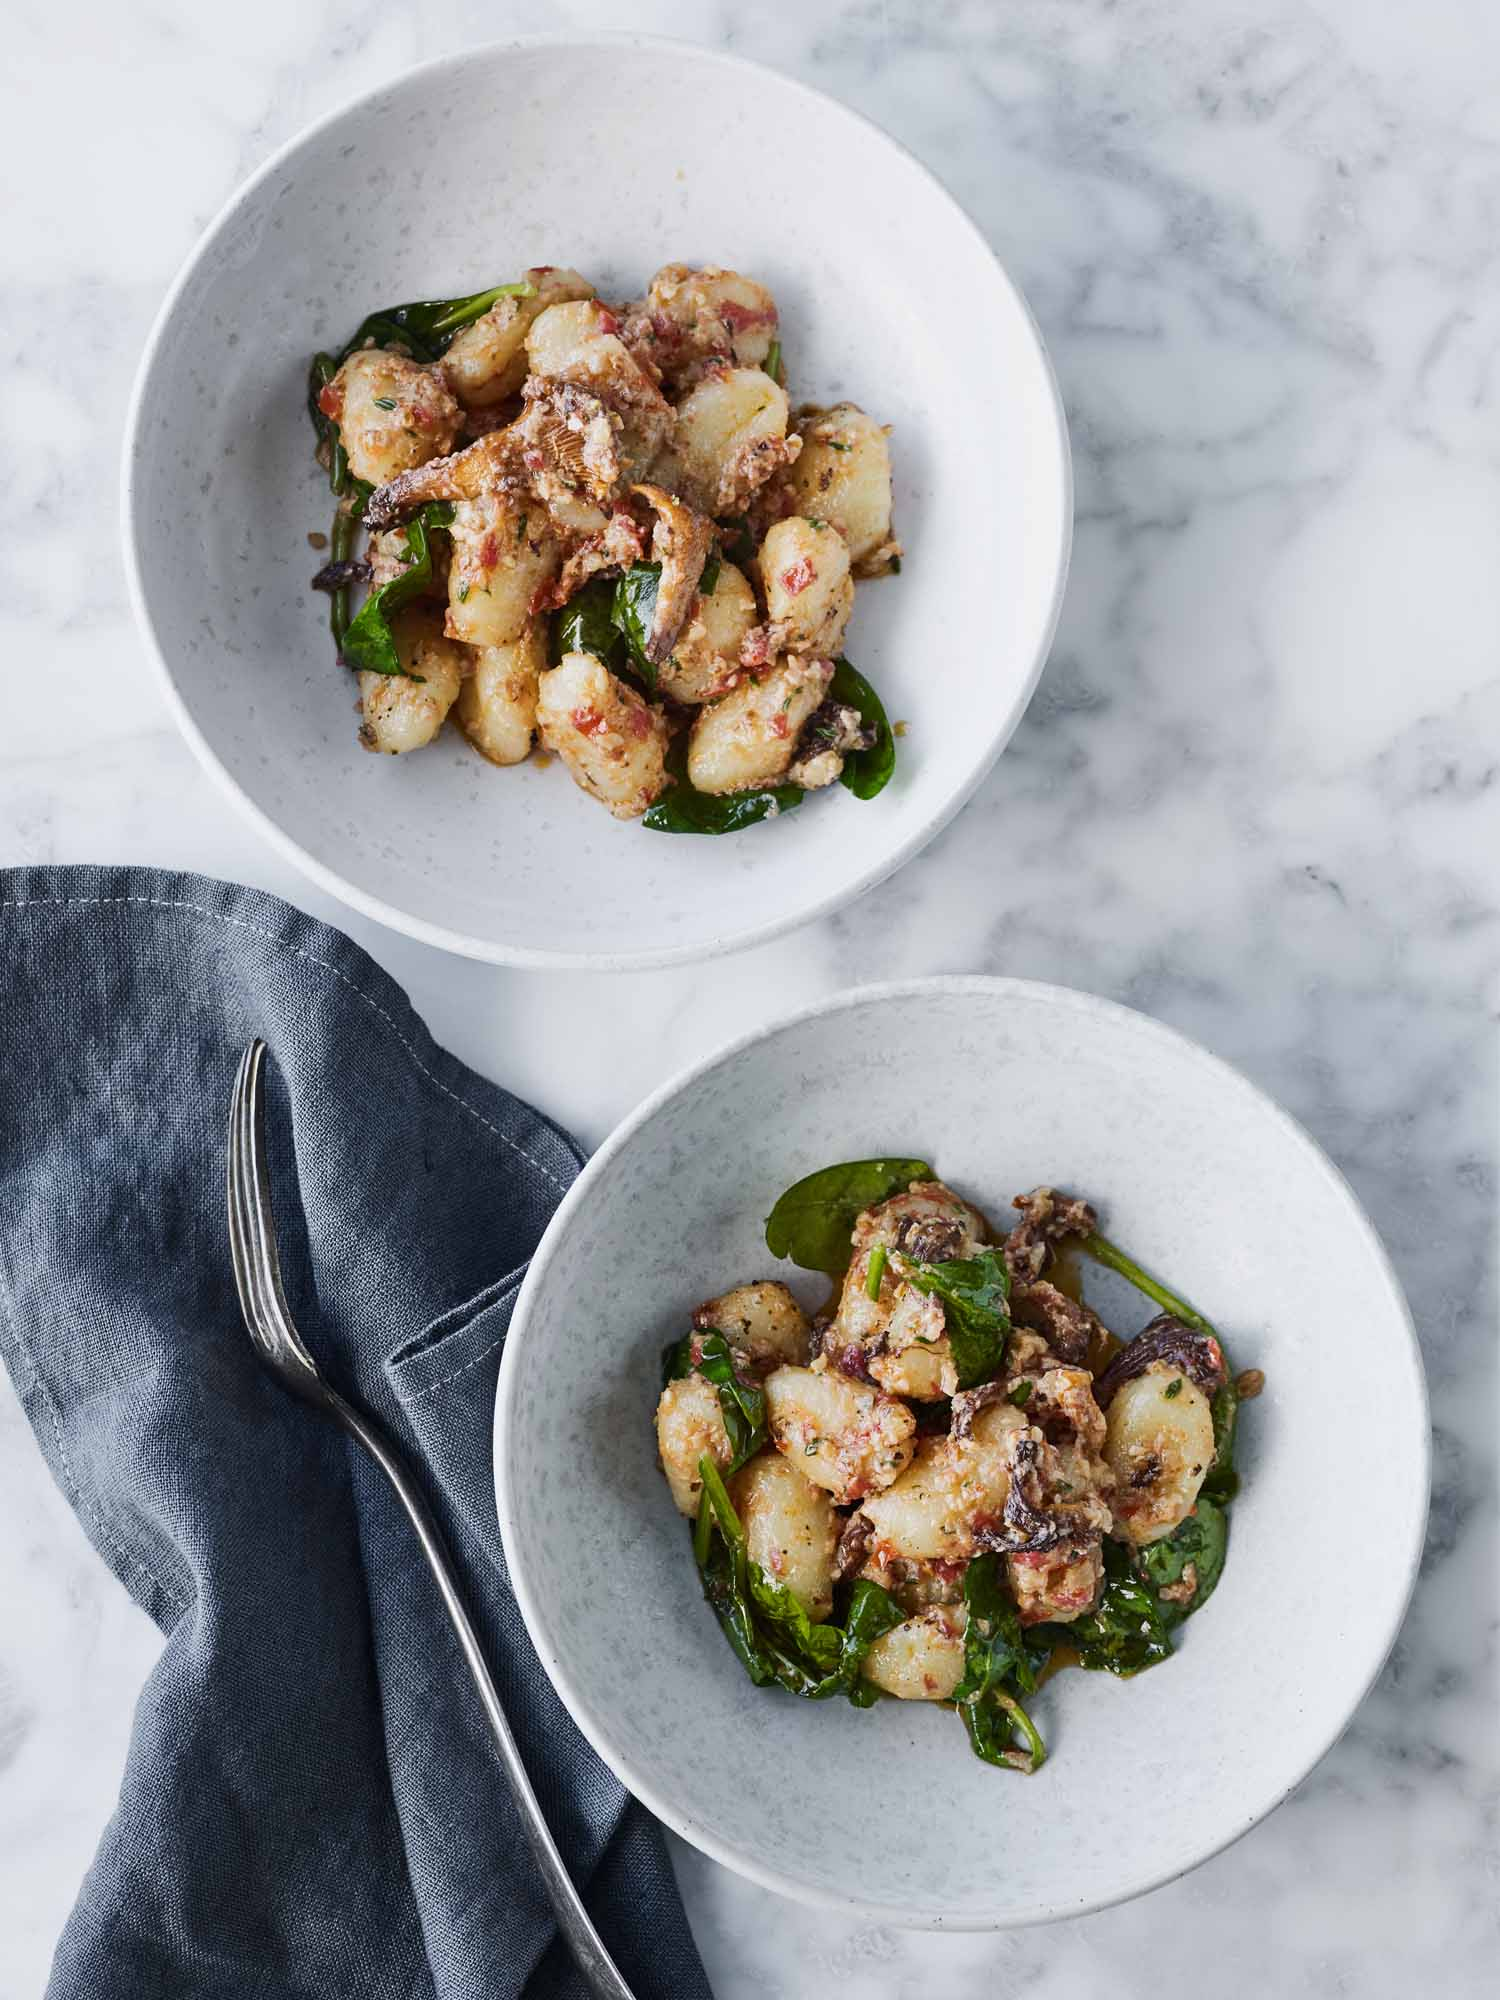 Potato Gnocchi with Walnut Sugo and Chanterelle Mushrooms